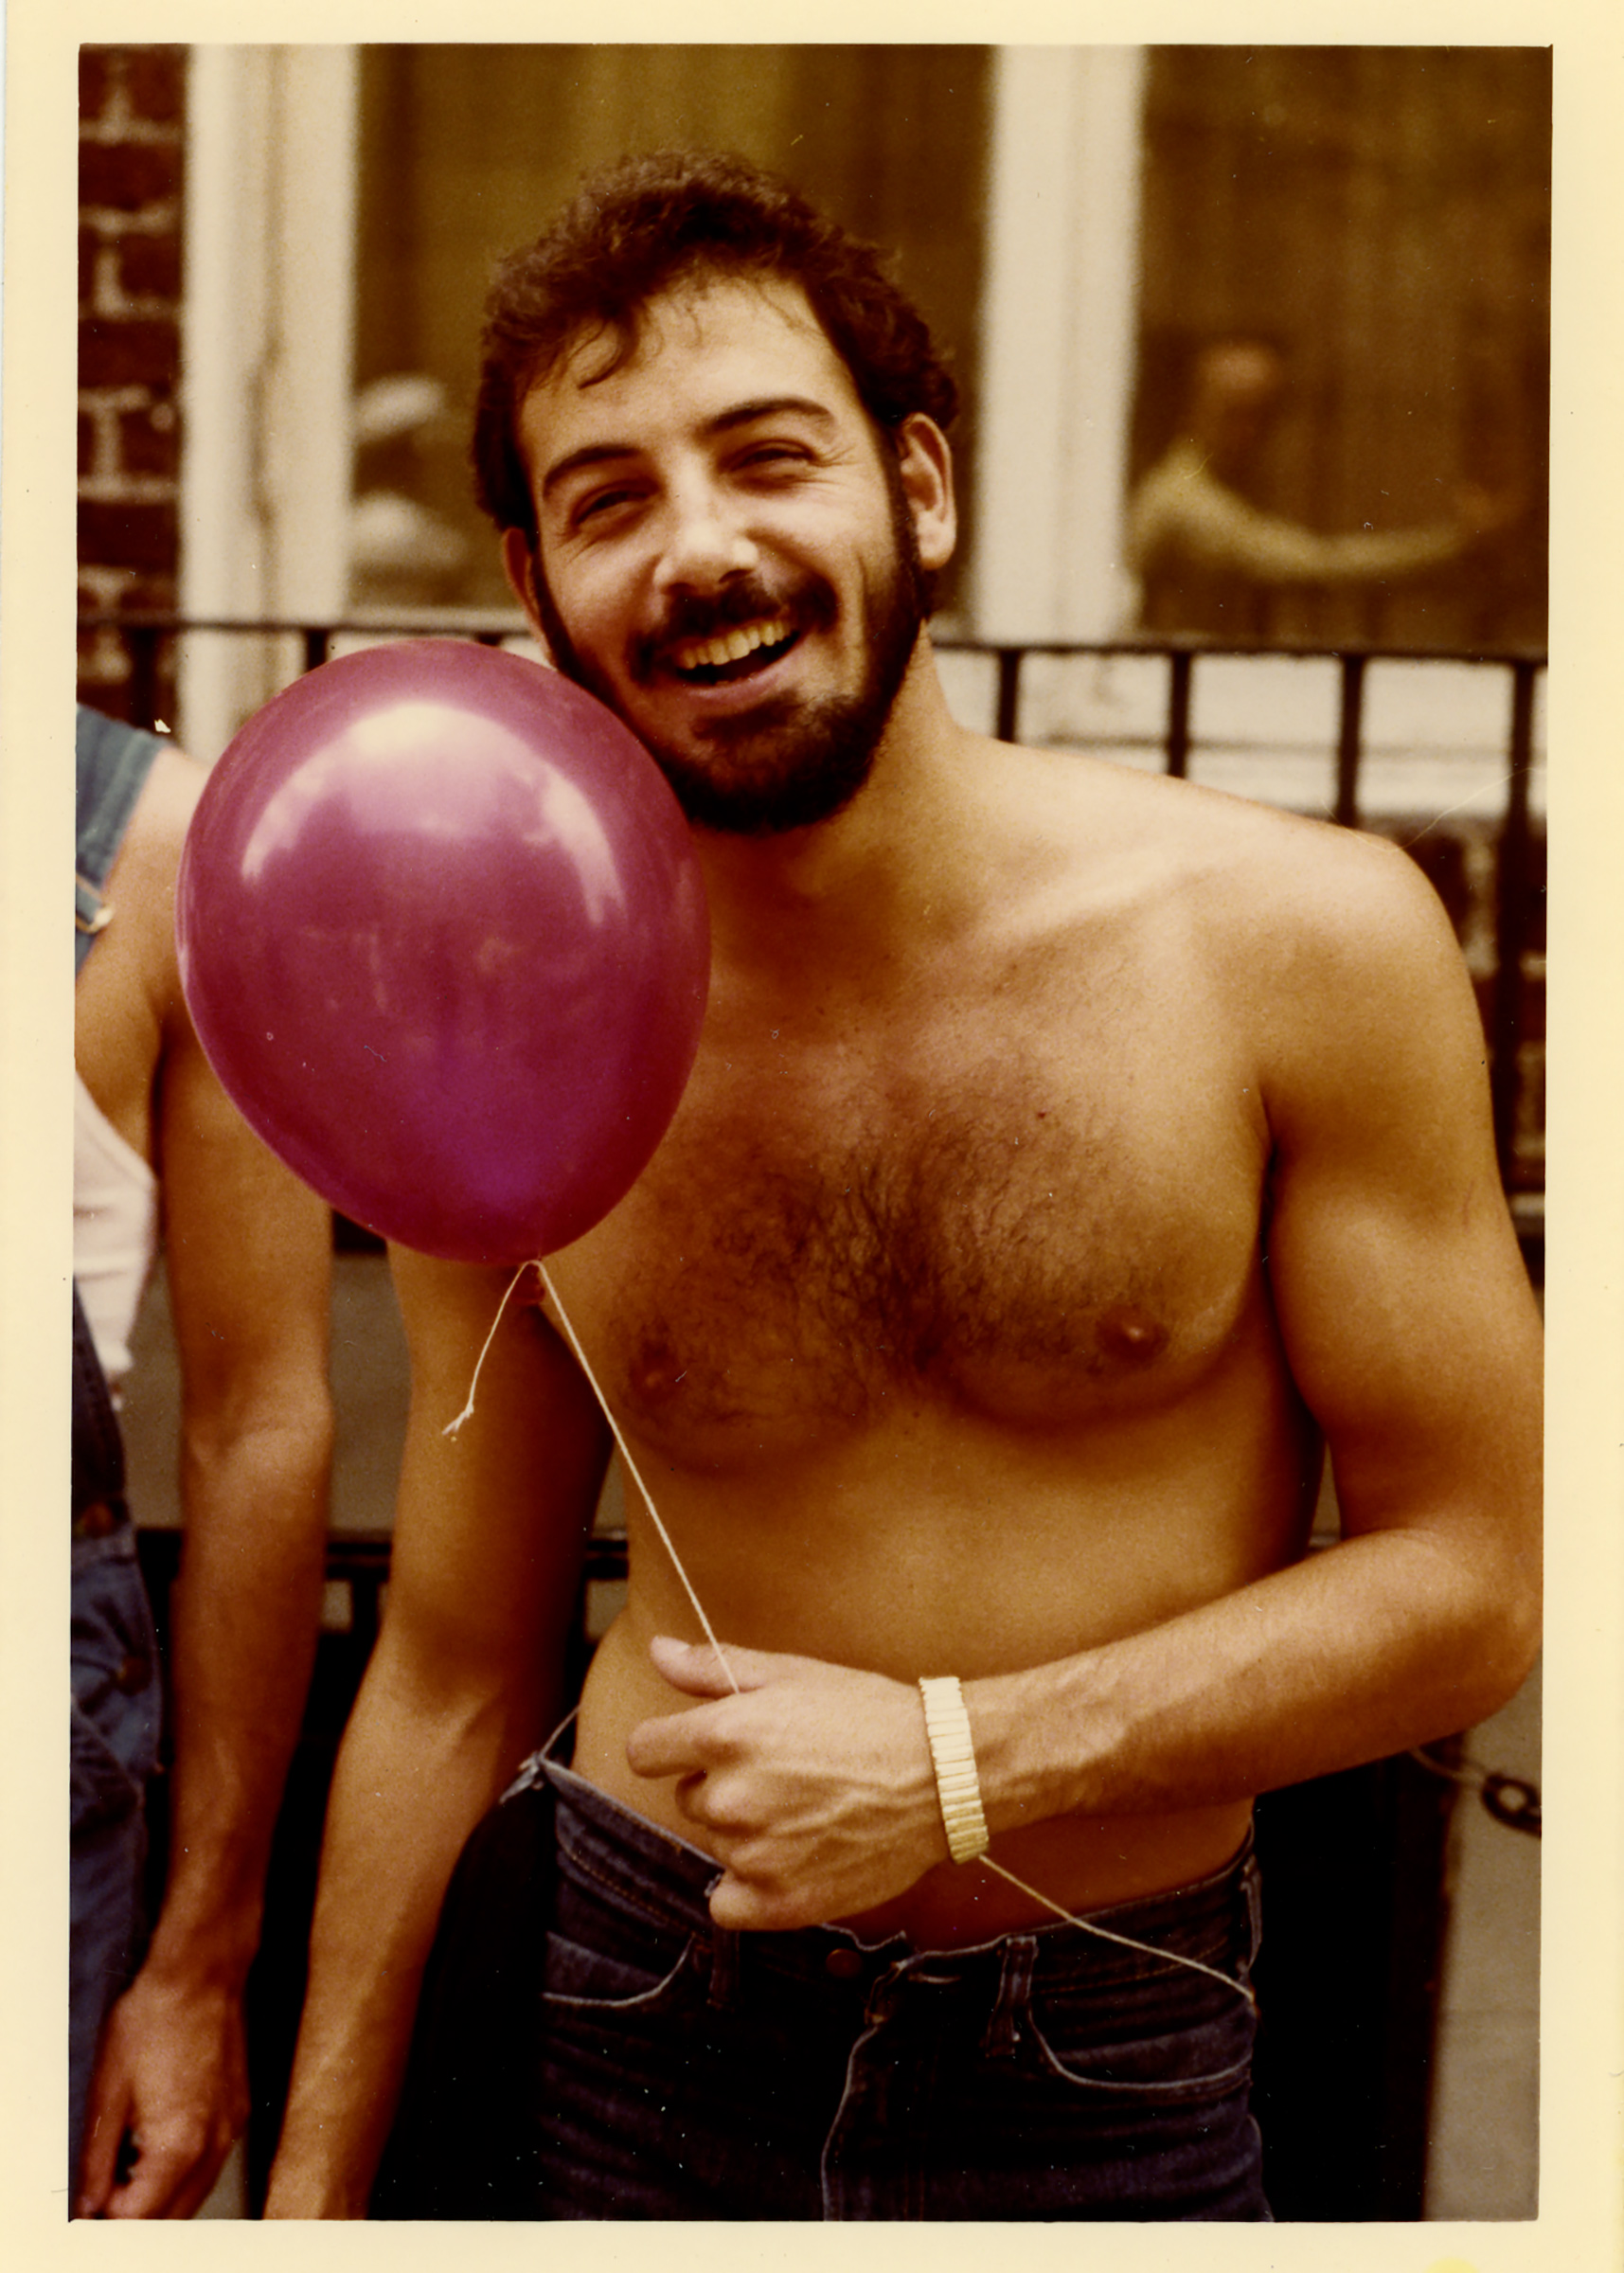 A man holds a balloon during the Pride Parade in New York City, 1977.